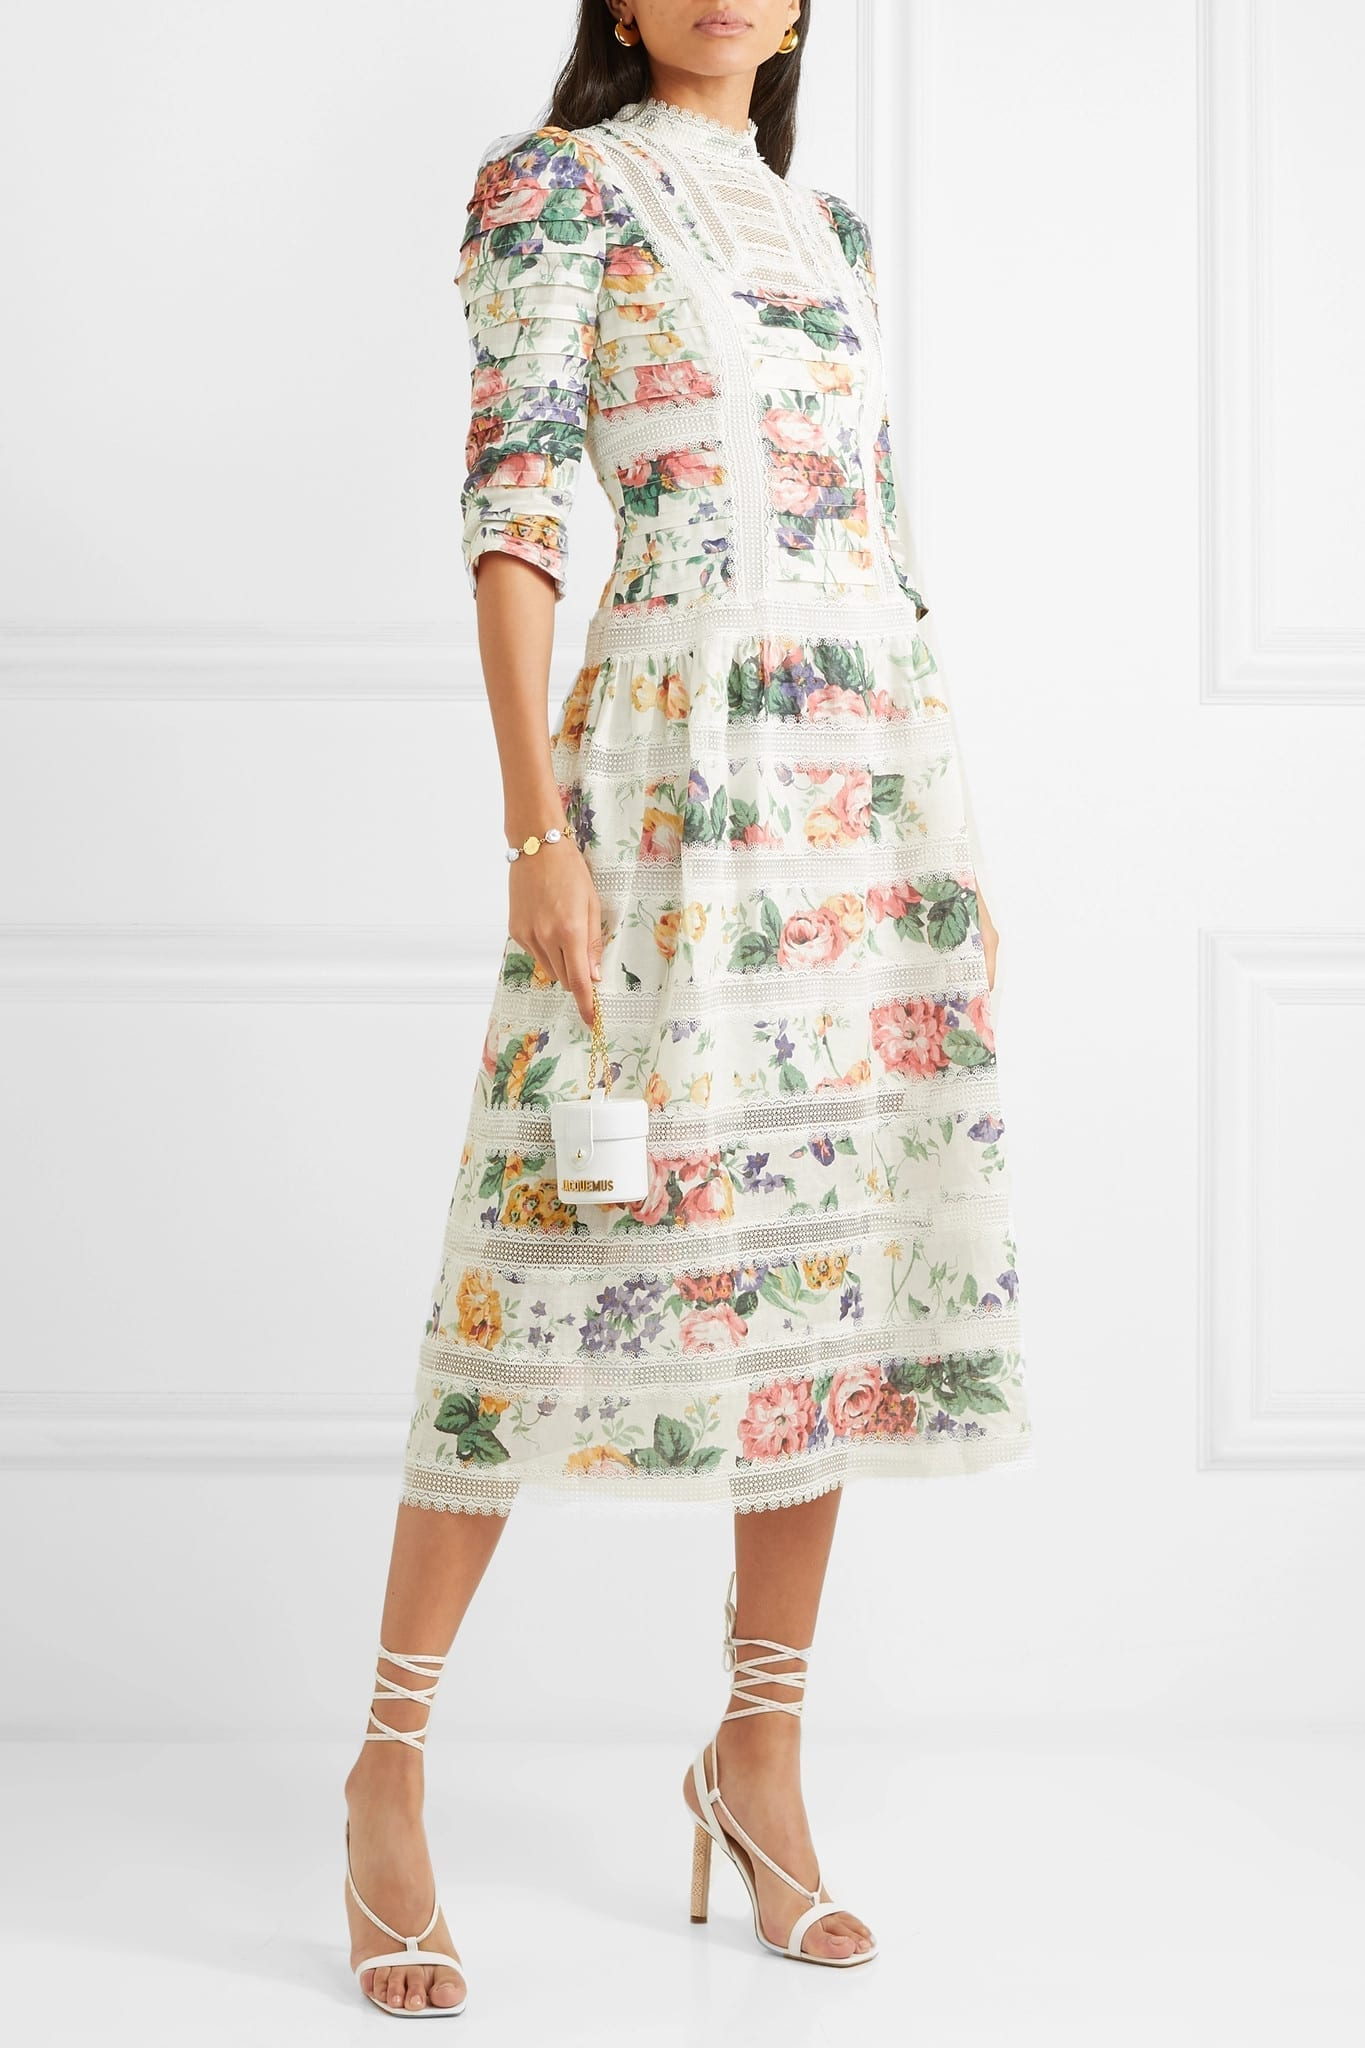 ZIMMERMANN Allia Pintucked Lace-Paneled Floral-Print Linen White Dress